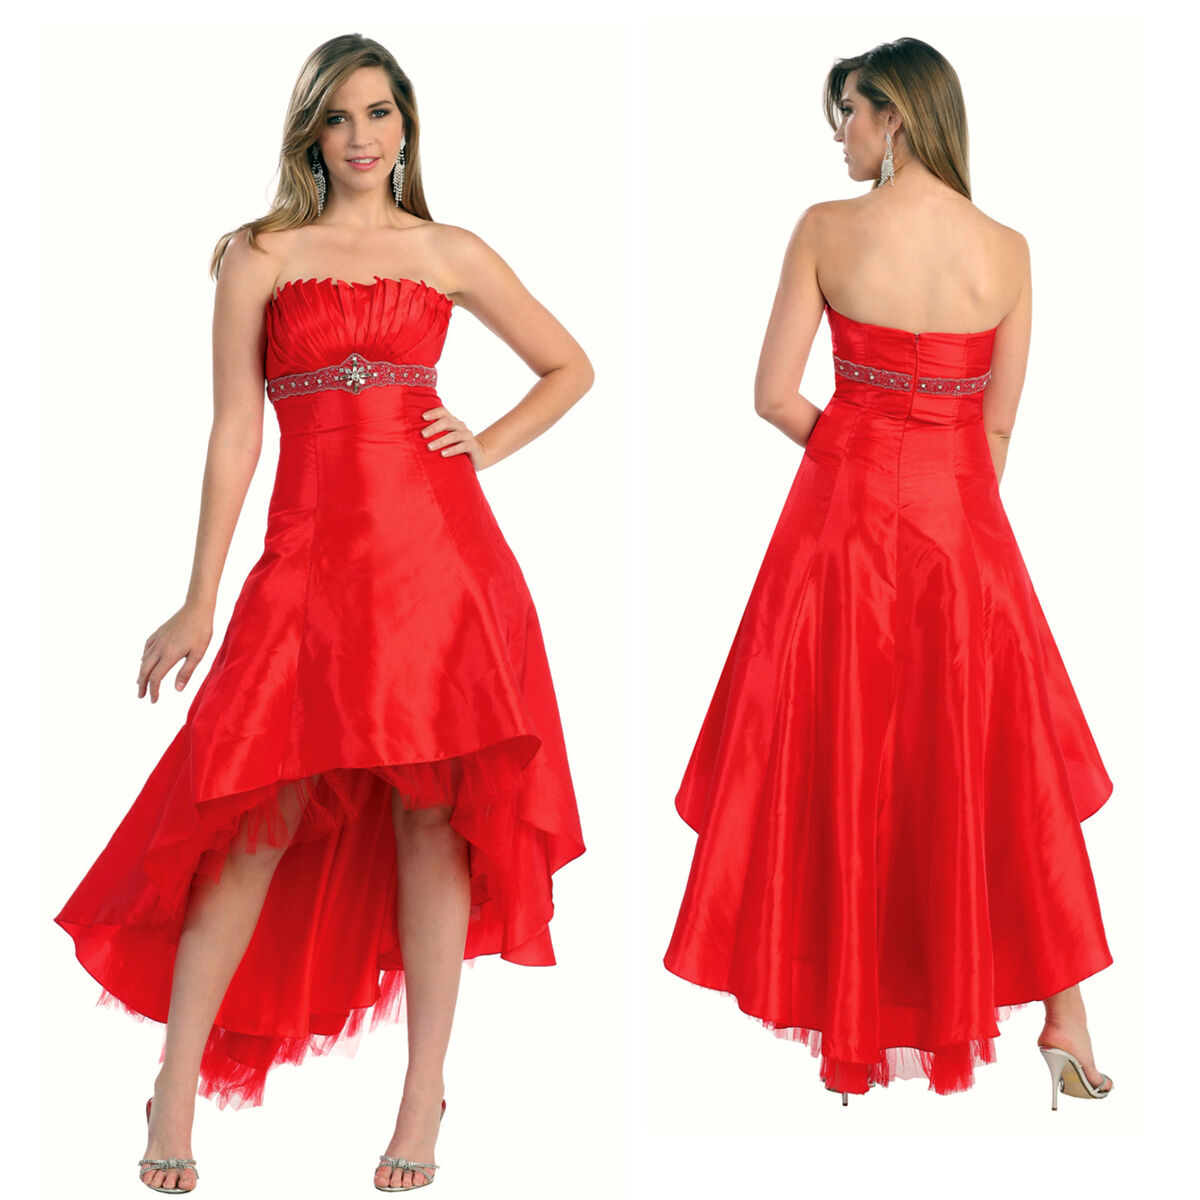 Formal Dresses For Middle School Dance - Plus Size Prom Dresses